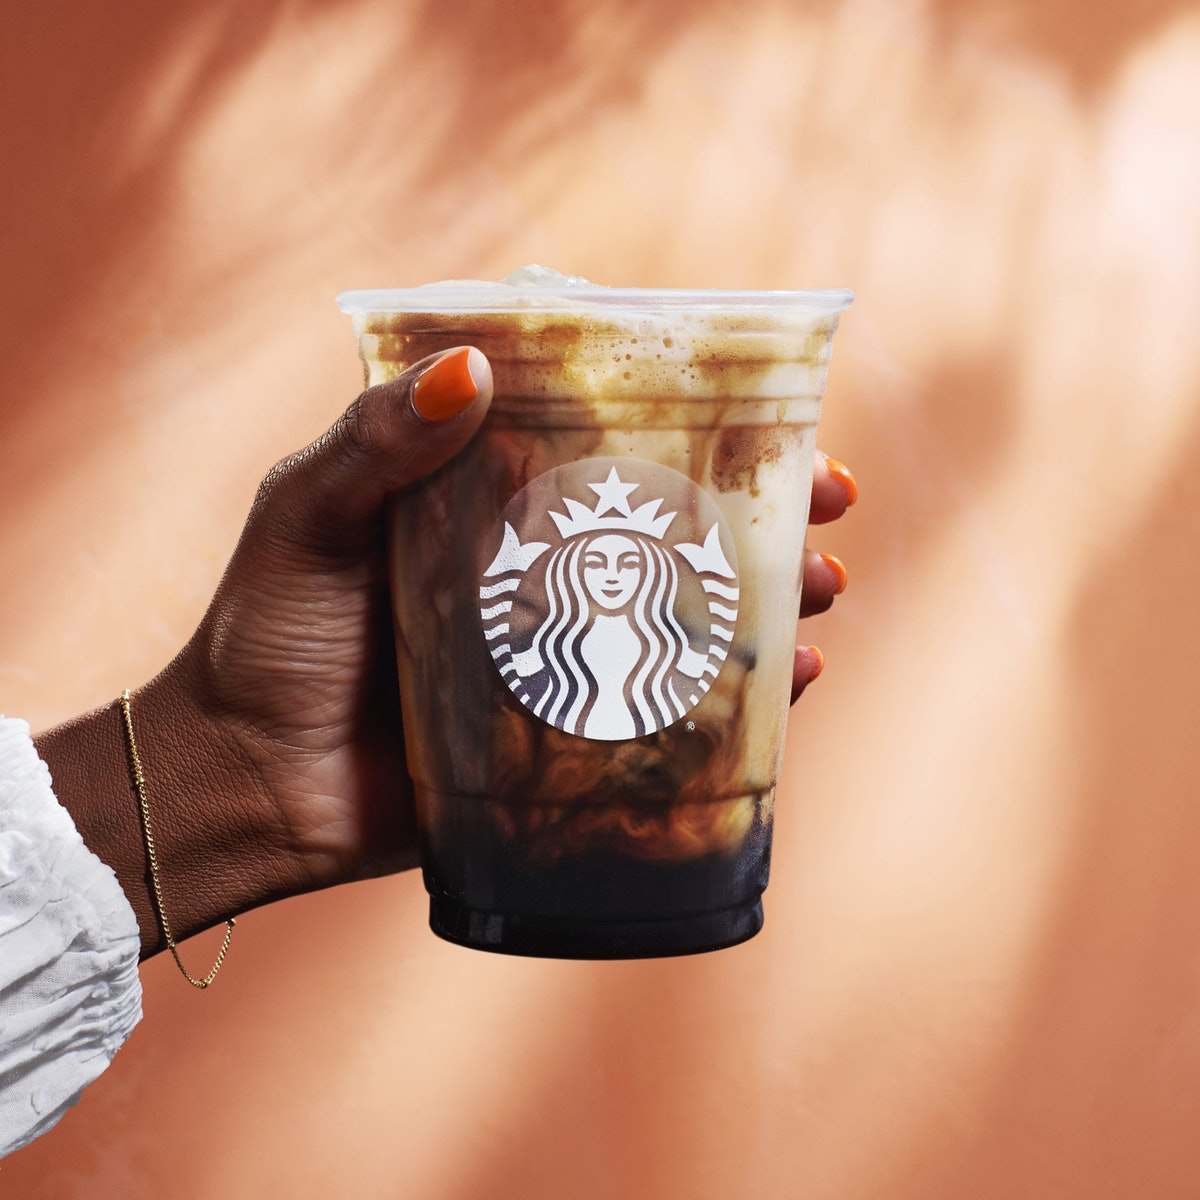 Starbucks' March 2021 free drink offer applies to handcrafted beverages like its new Iced Shaken Espressos.